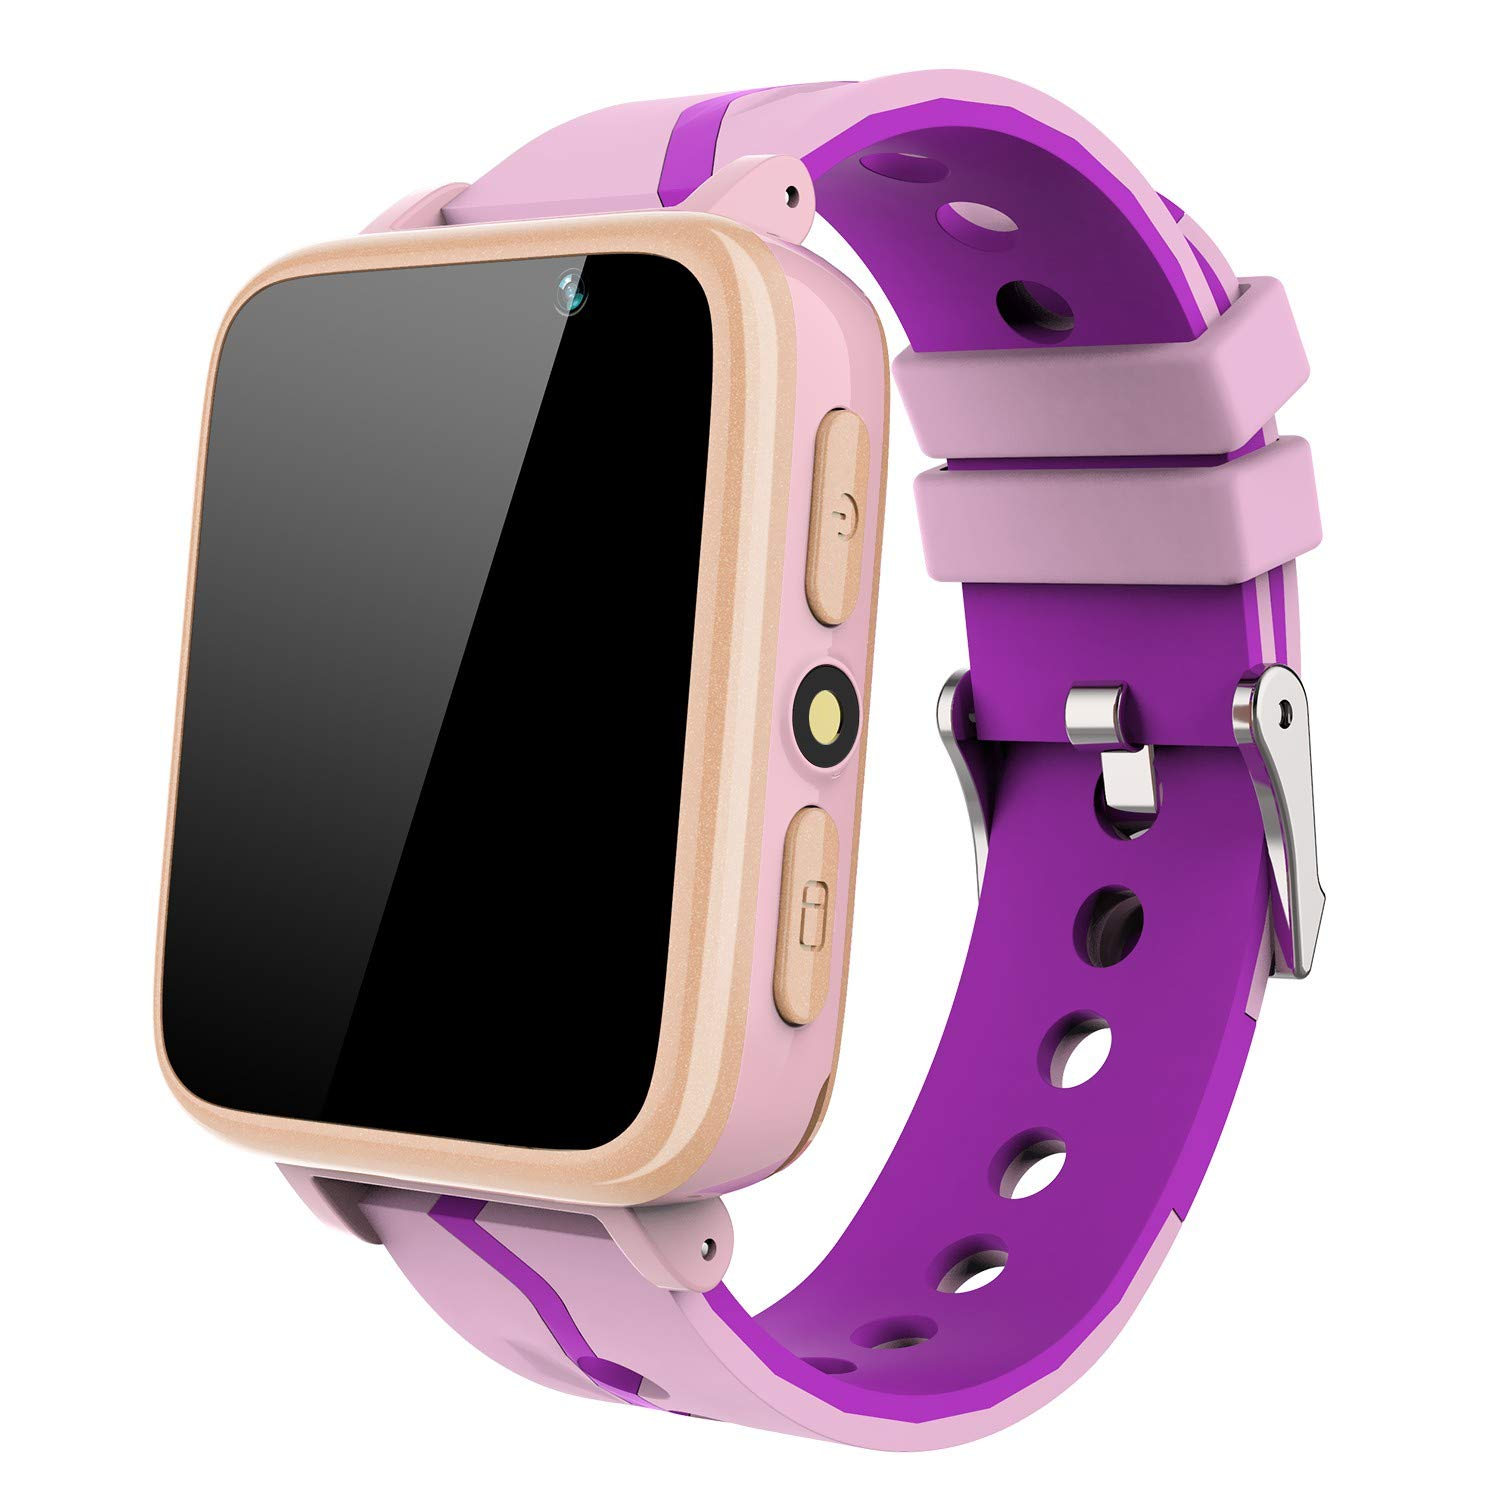 Kids Smart Watch for Boys Girls - HD Touch Screen Sports Smartwatch Phone with Call Camera Games Recorder Alarm Music Player for Children Teen ...